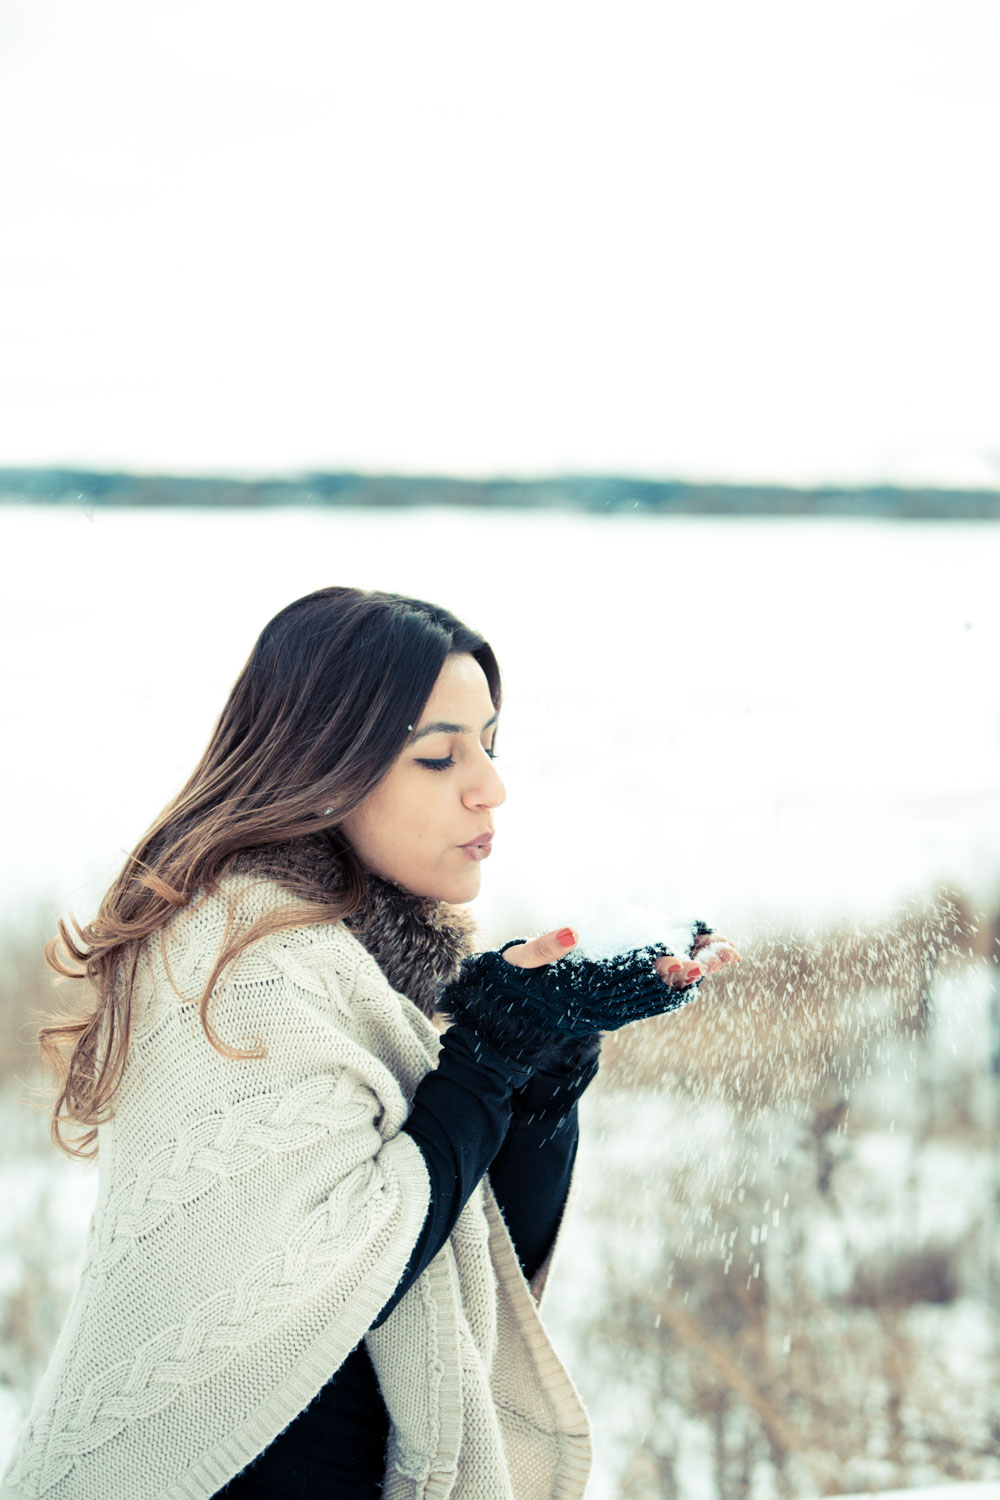 girl blowing snow off her hand - Tips for Preparing for a Portraits Session